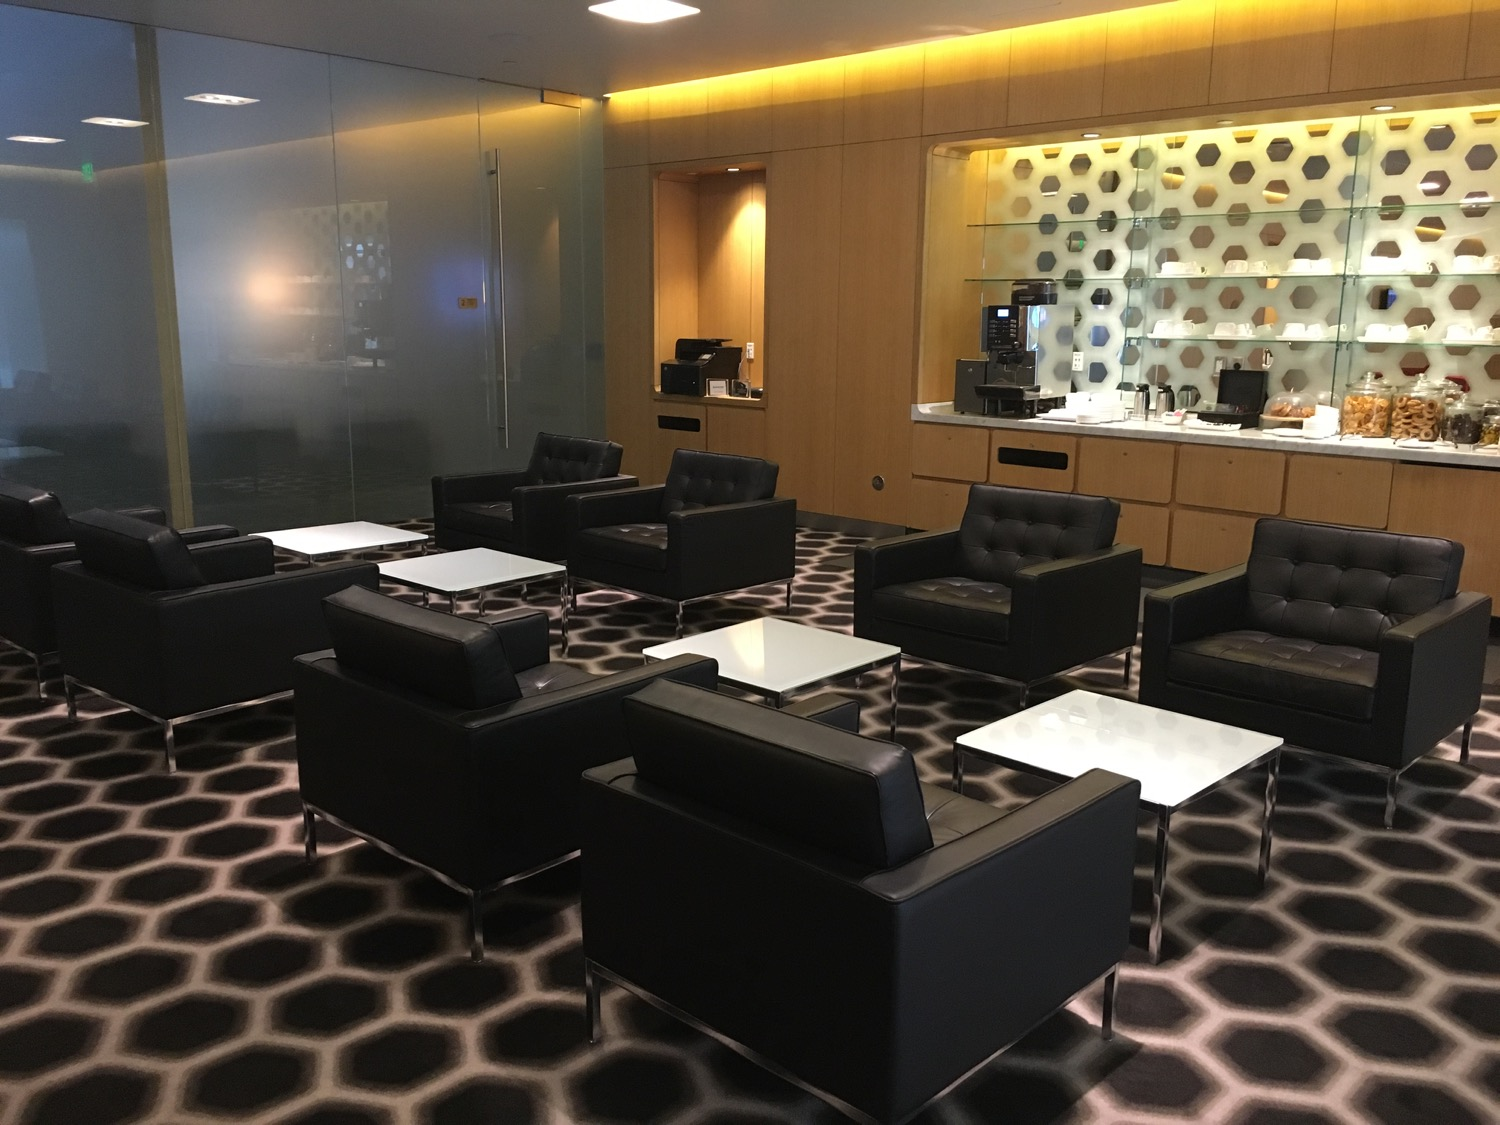 Qantas FirstClass Lounge in Los Angeles